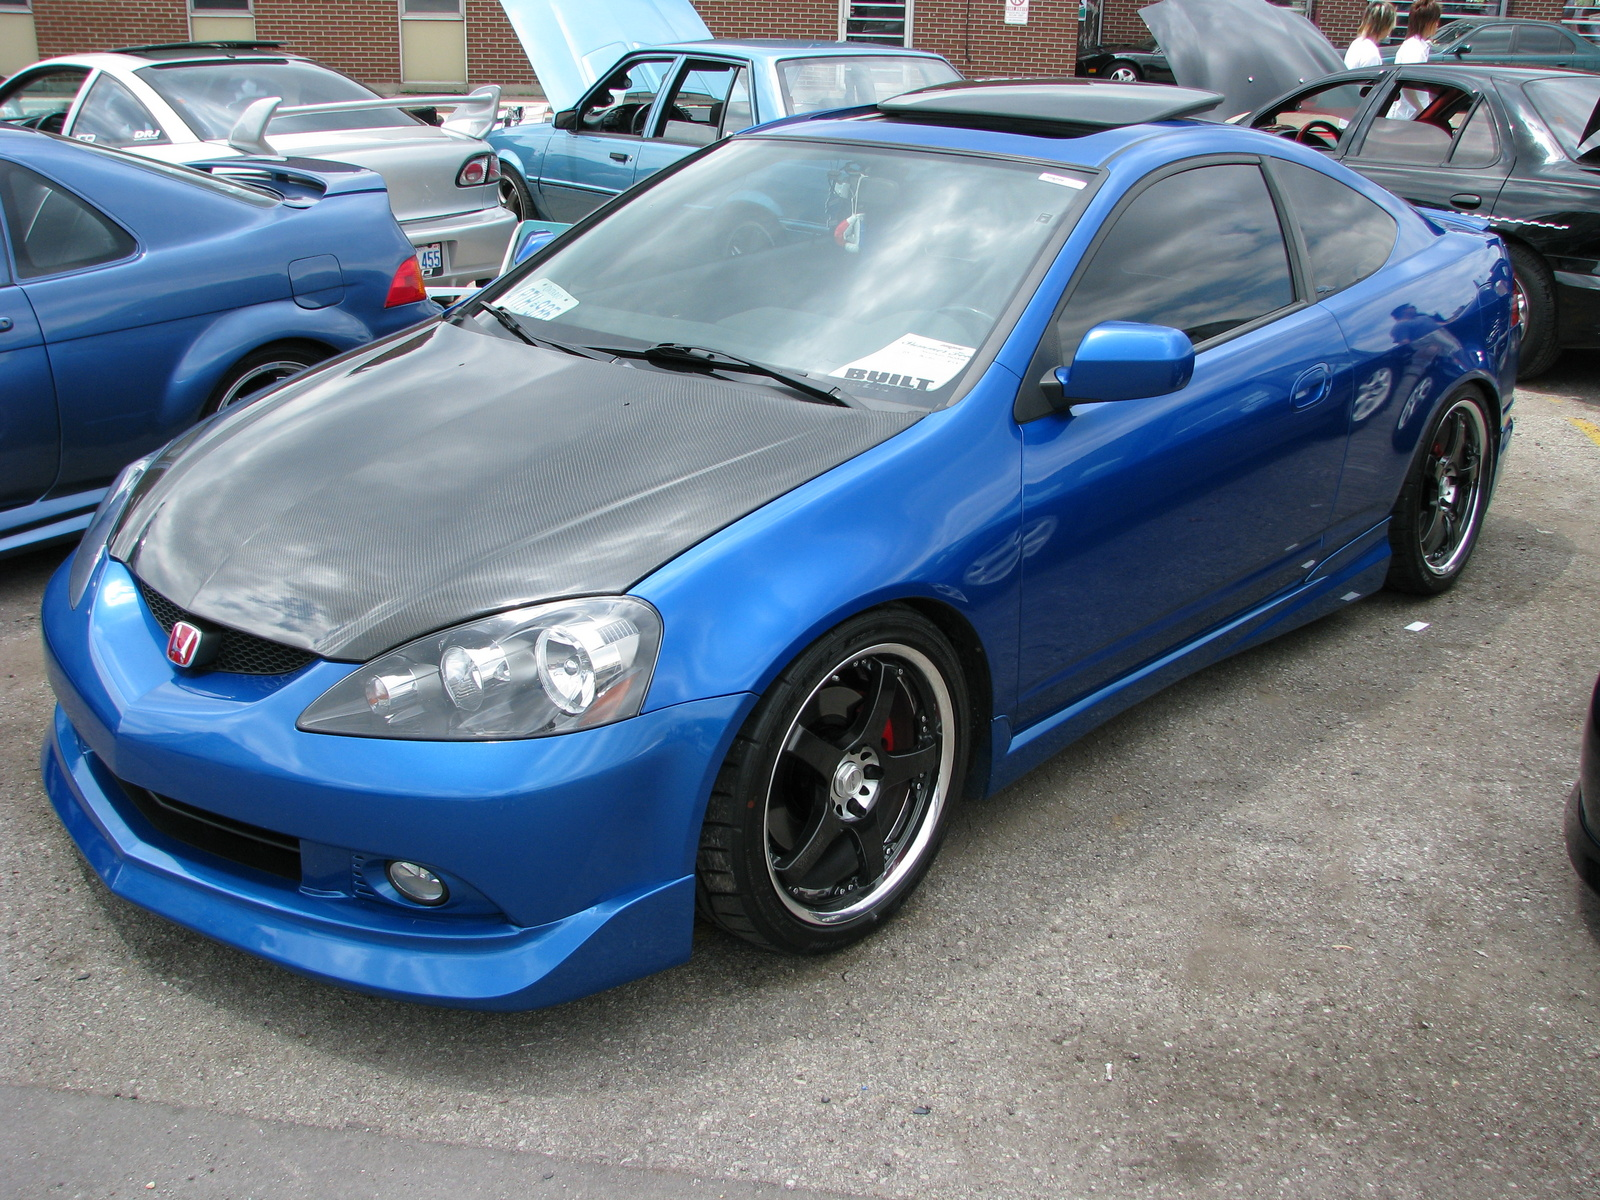 2005 Acura RSX Type-S photo - 10